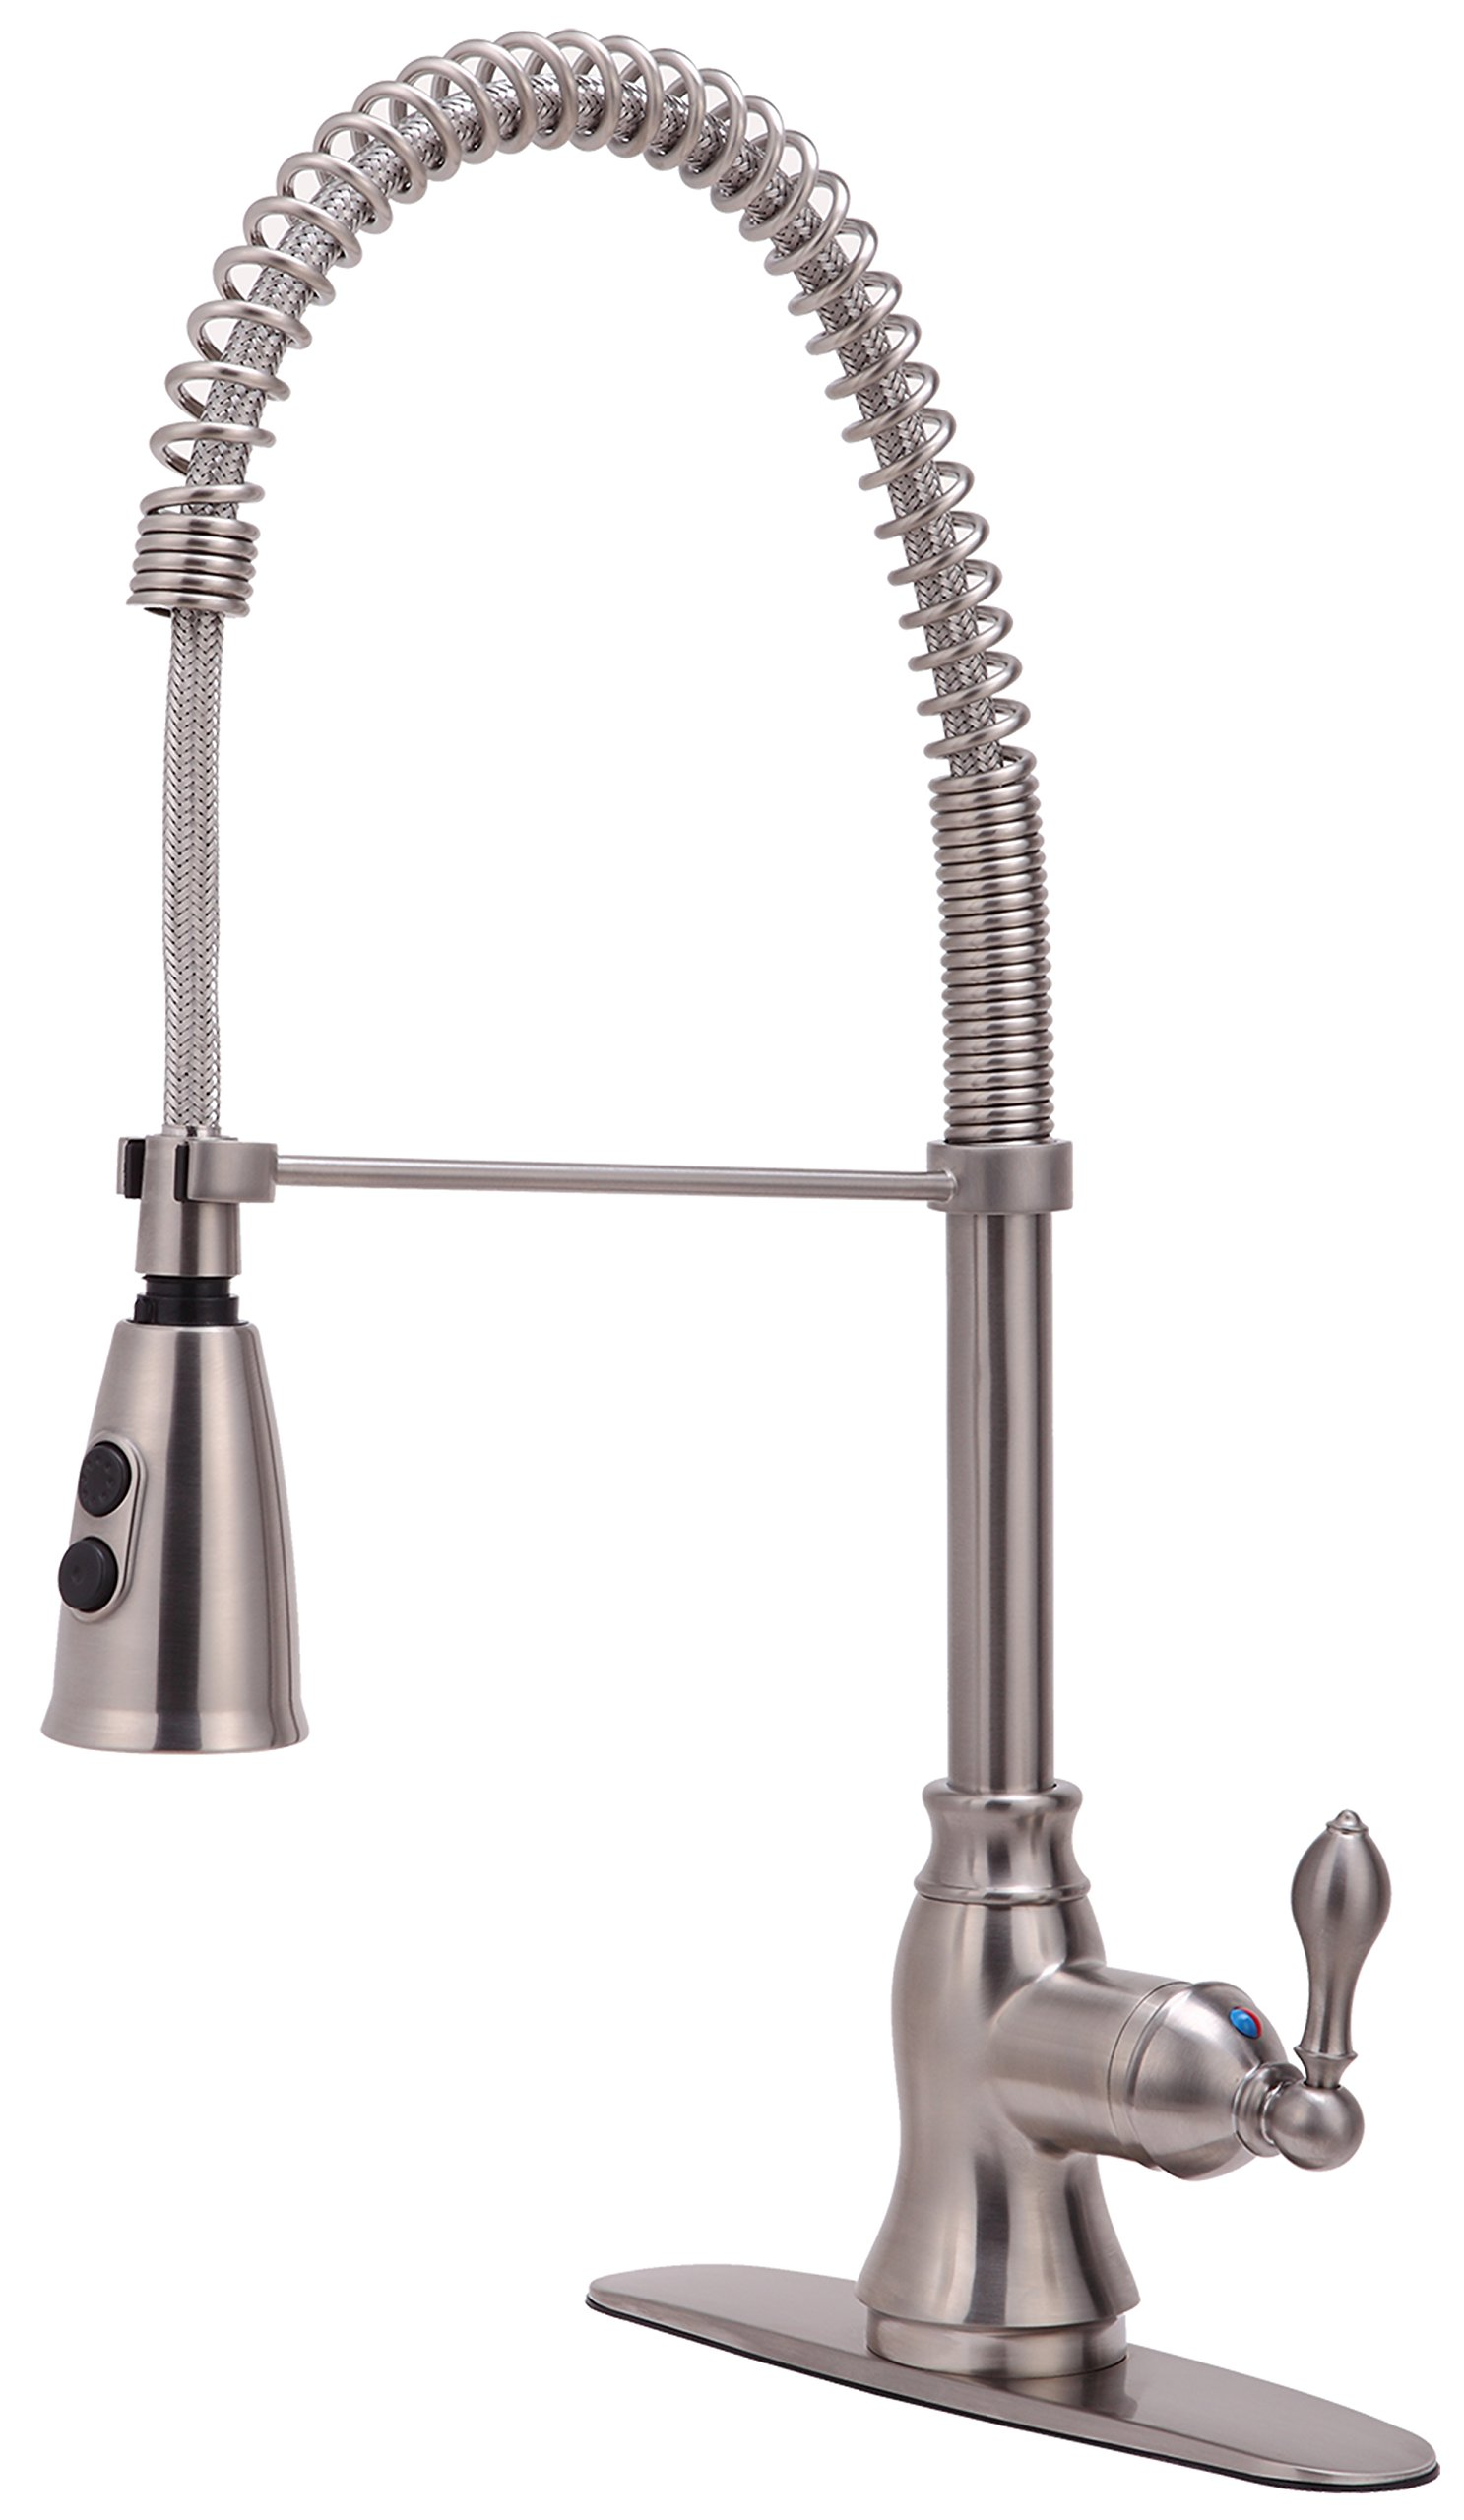 Derengge KF-5988-SS Single Handle Spring Spout Kitchen Faucet with Pull-Down Sprayer, 1 Hole or 3 Hole Installation, Meets cUPC NSF61-9 and AB1953 Lead Free Standard, Stainless Steel